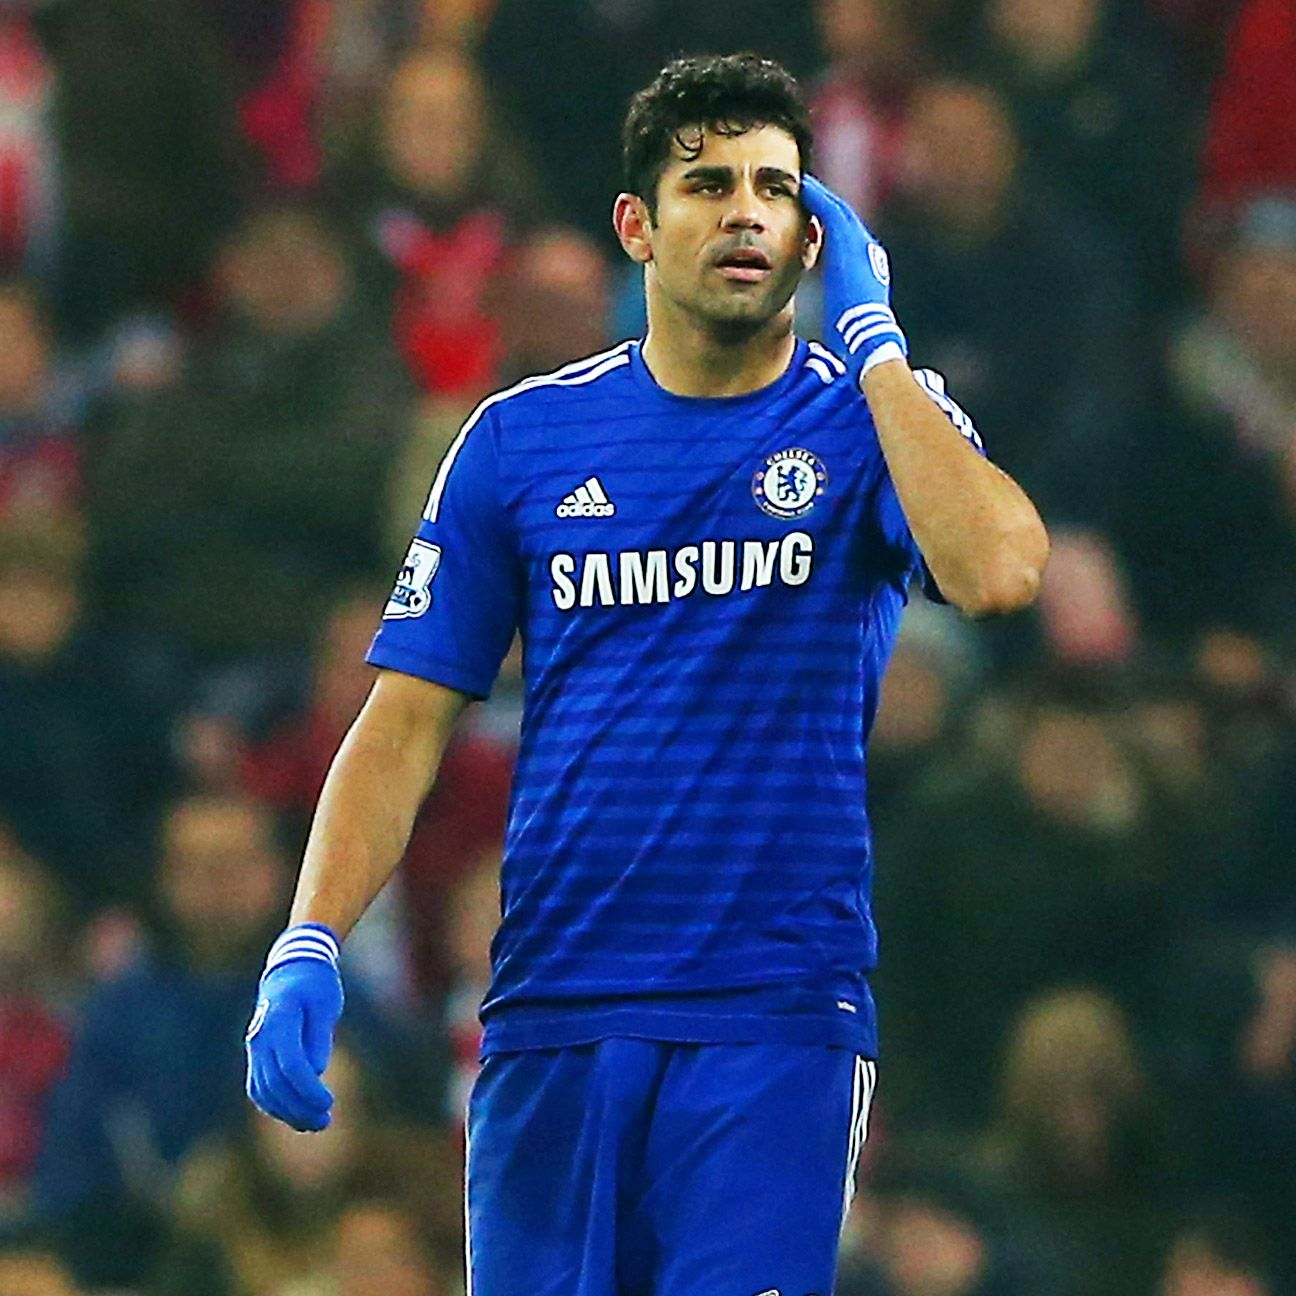 Diego Costa was left frustrated by a suffocating and physical Sunderland defence.